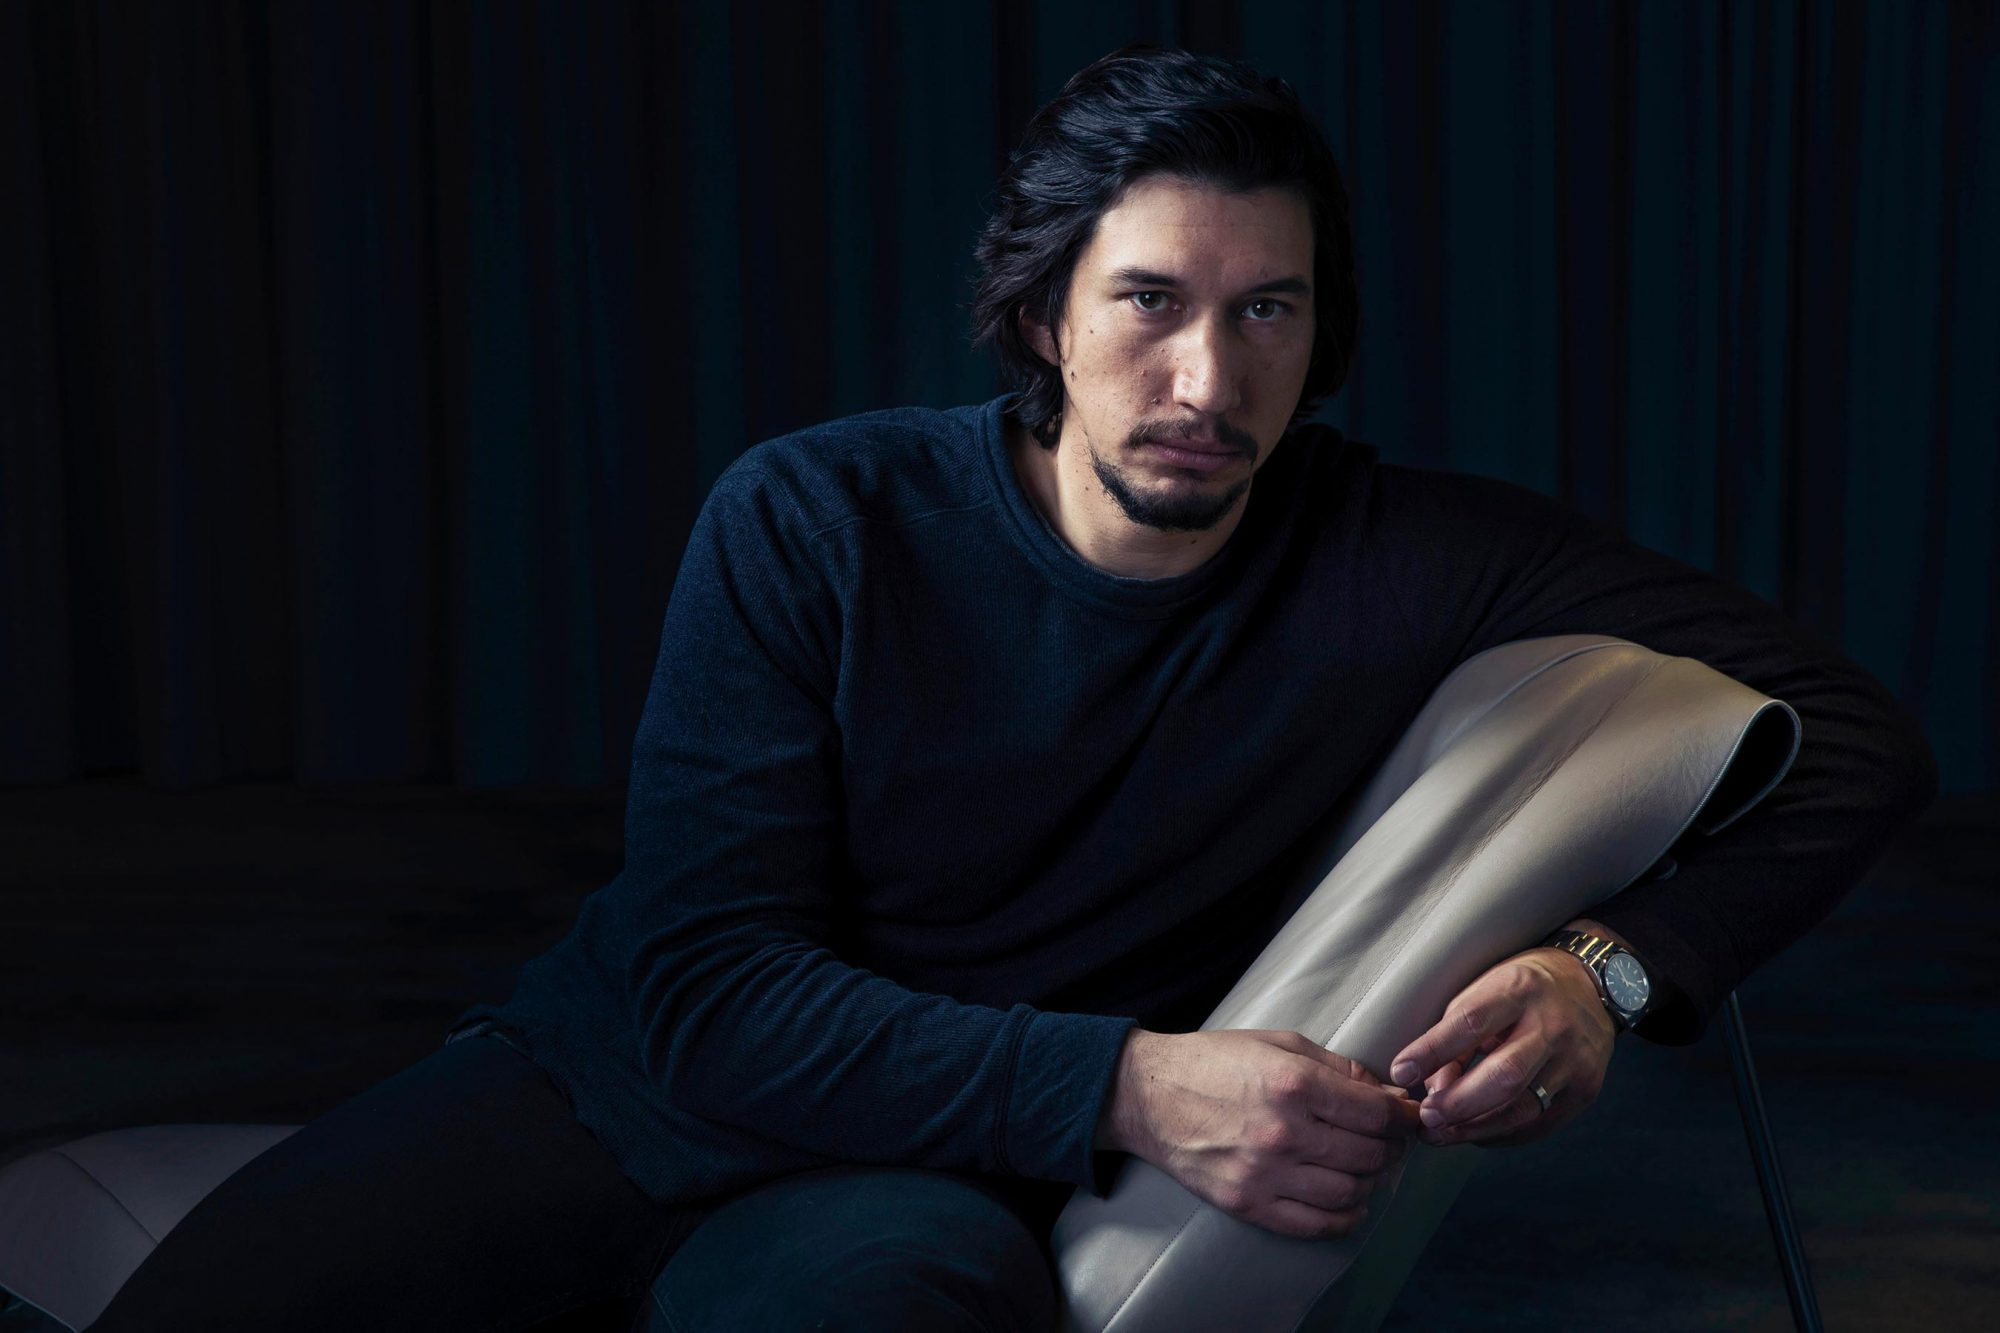 Adam Driver Portrait Session, New York, USA - 14 Dec 2016